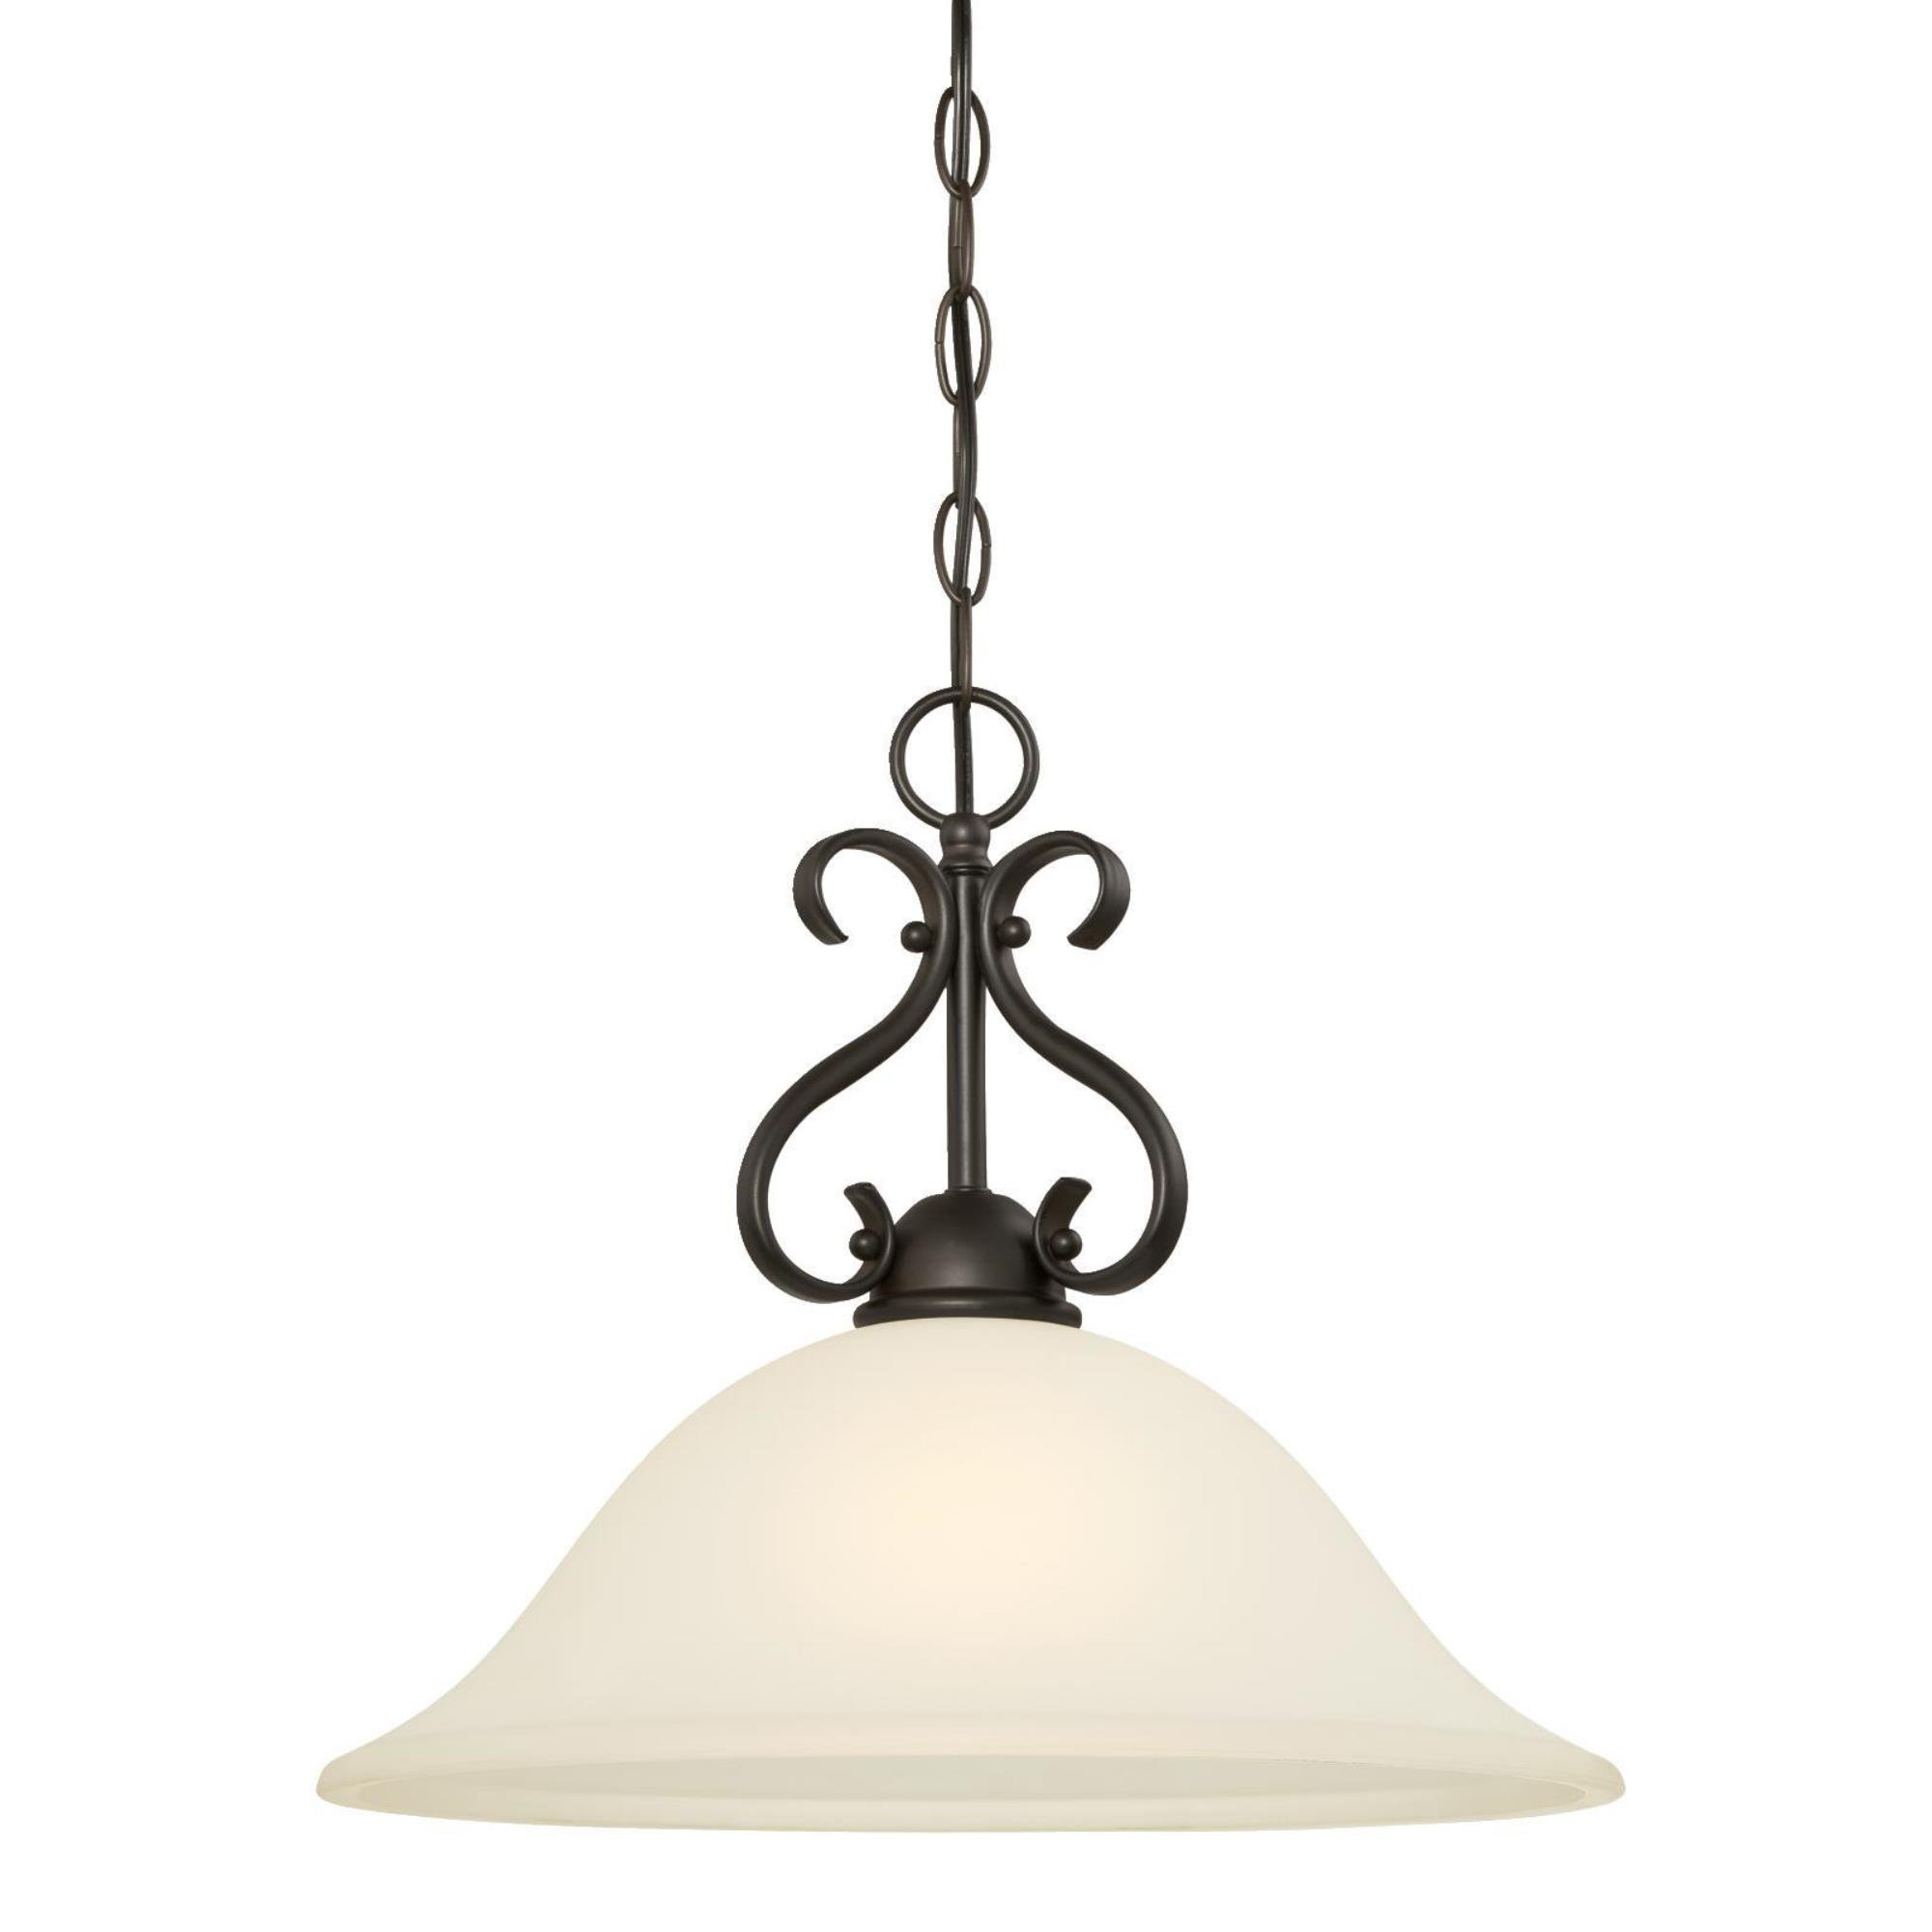 6306000 Dunmore One-Light Indoor Pendant, Oil Rubbed Bronze Finish with Frosted Glass